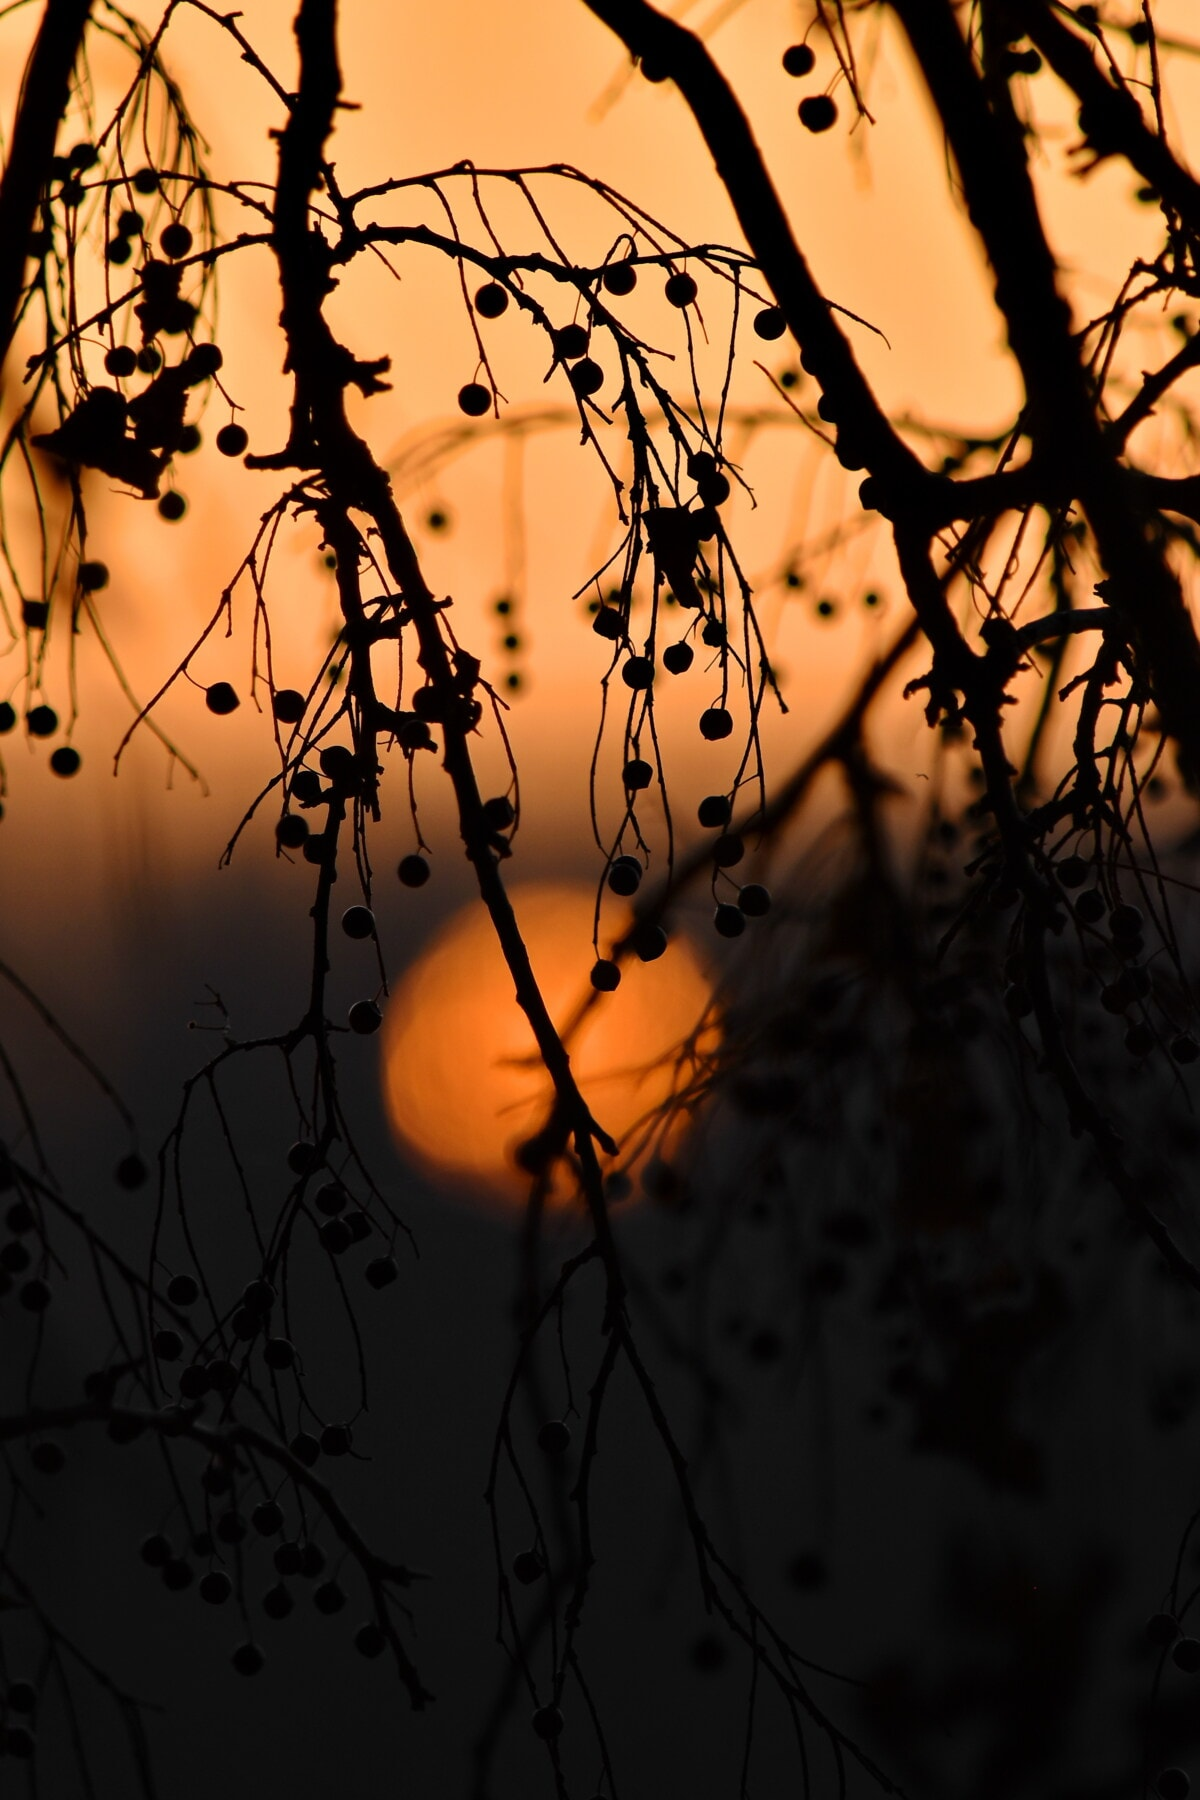 sunrise, trees, sun, branches, majestic, sunlight, orange yellow, yellowish brown, silhouette, nature